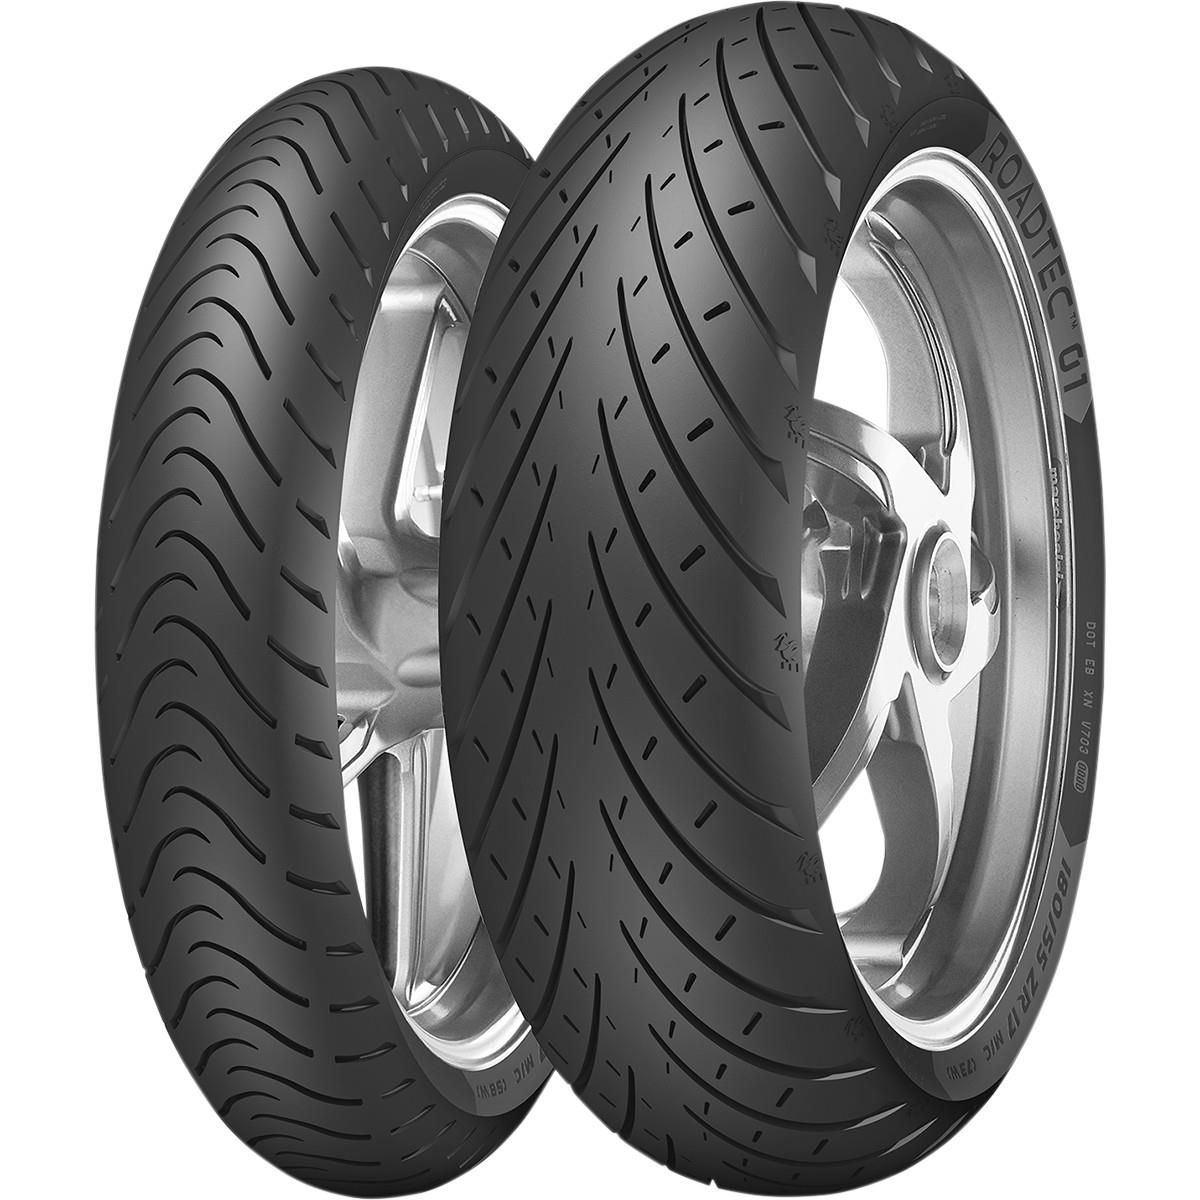 Metzeler 3240900 Roadtec 01 Front Tire 100 90r16 Walmart Com In 2021 Motorcycle Parts And Accessories Motorcycle Tires Tire